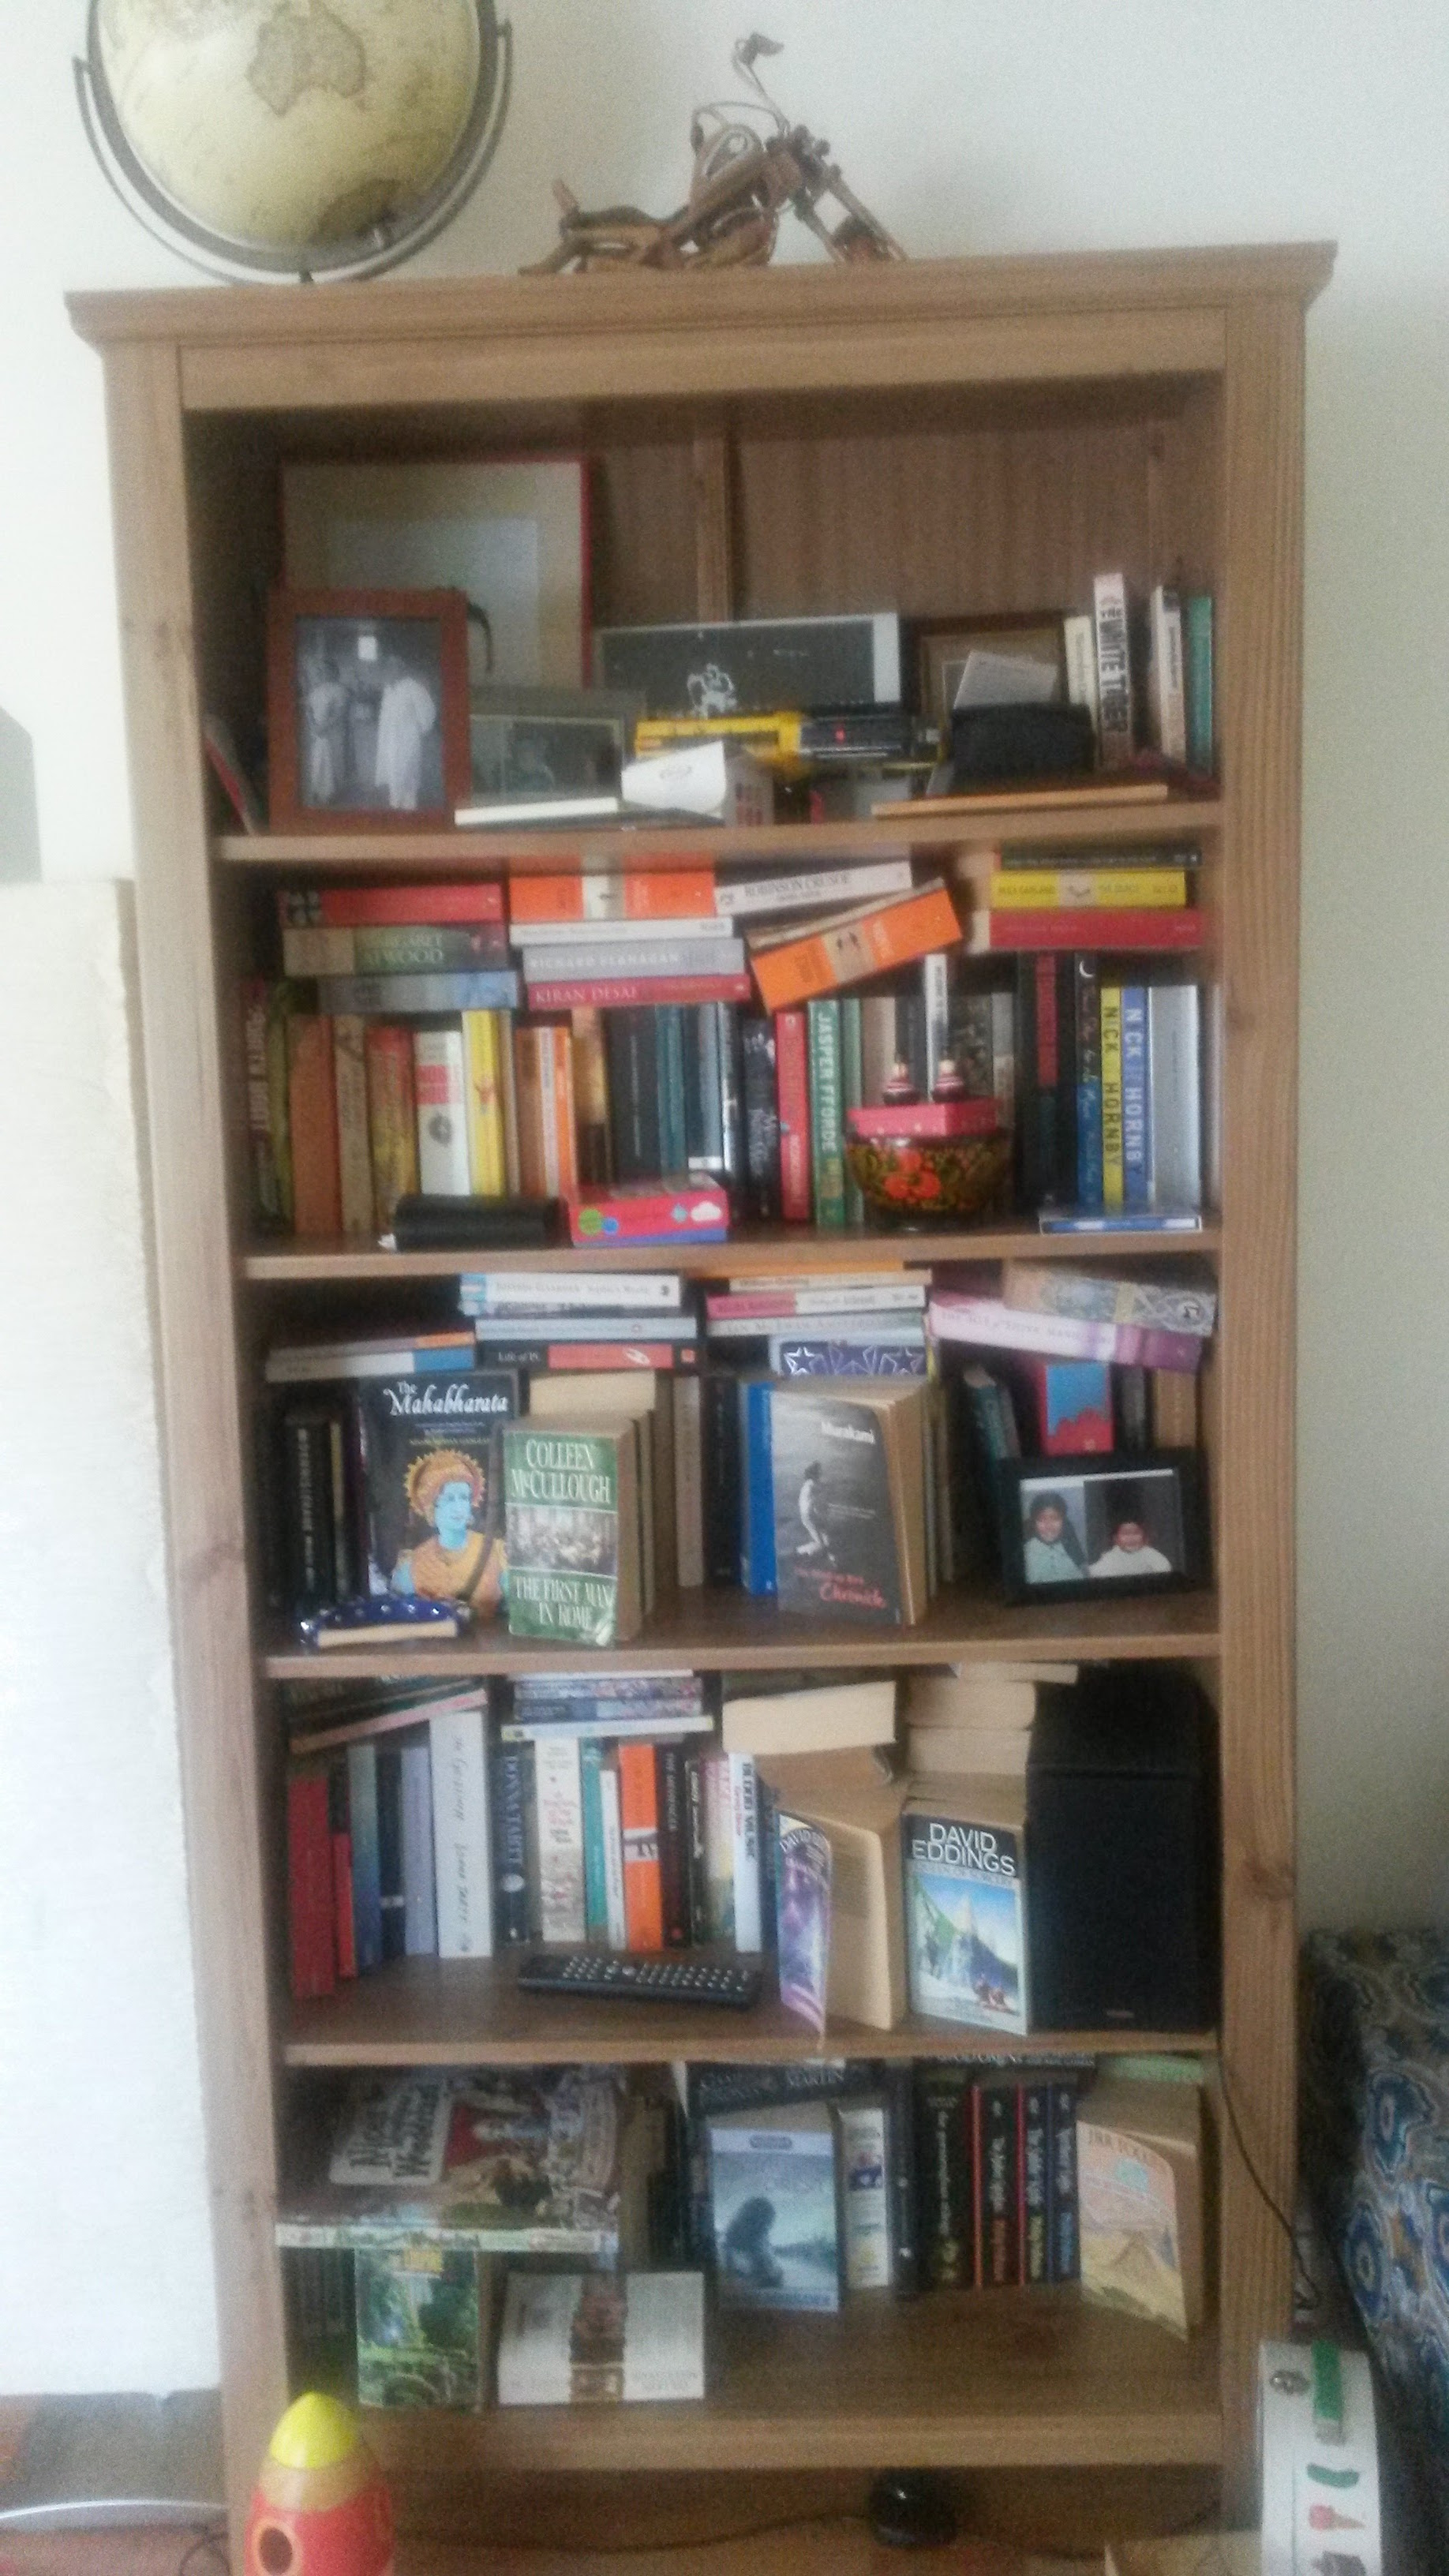 Messy bookshelf after cleanup